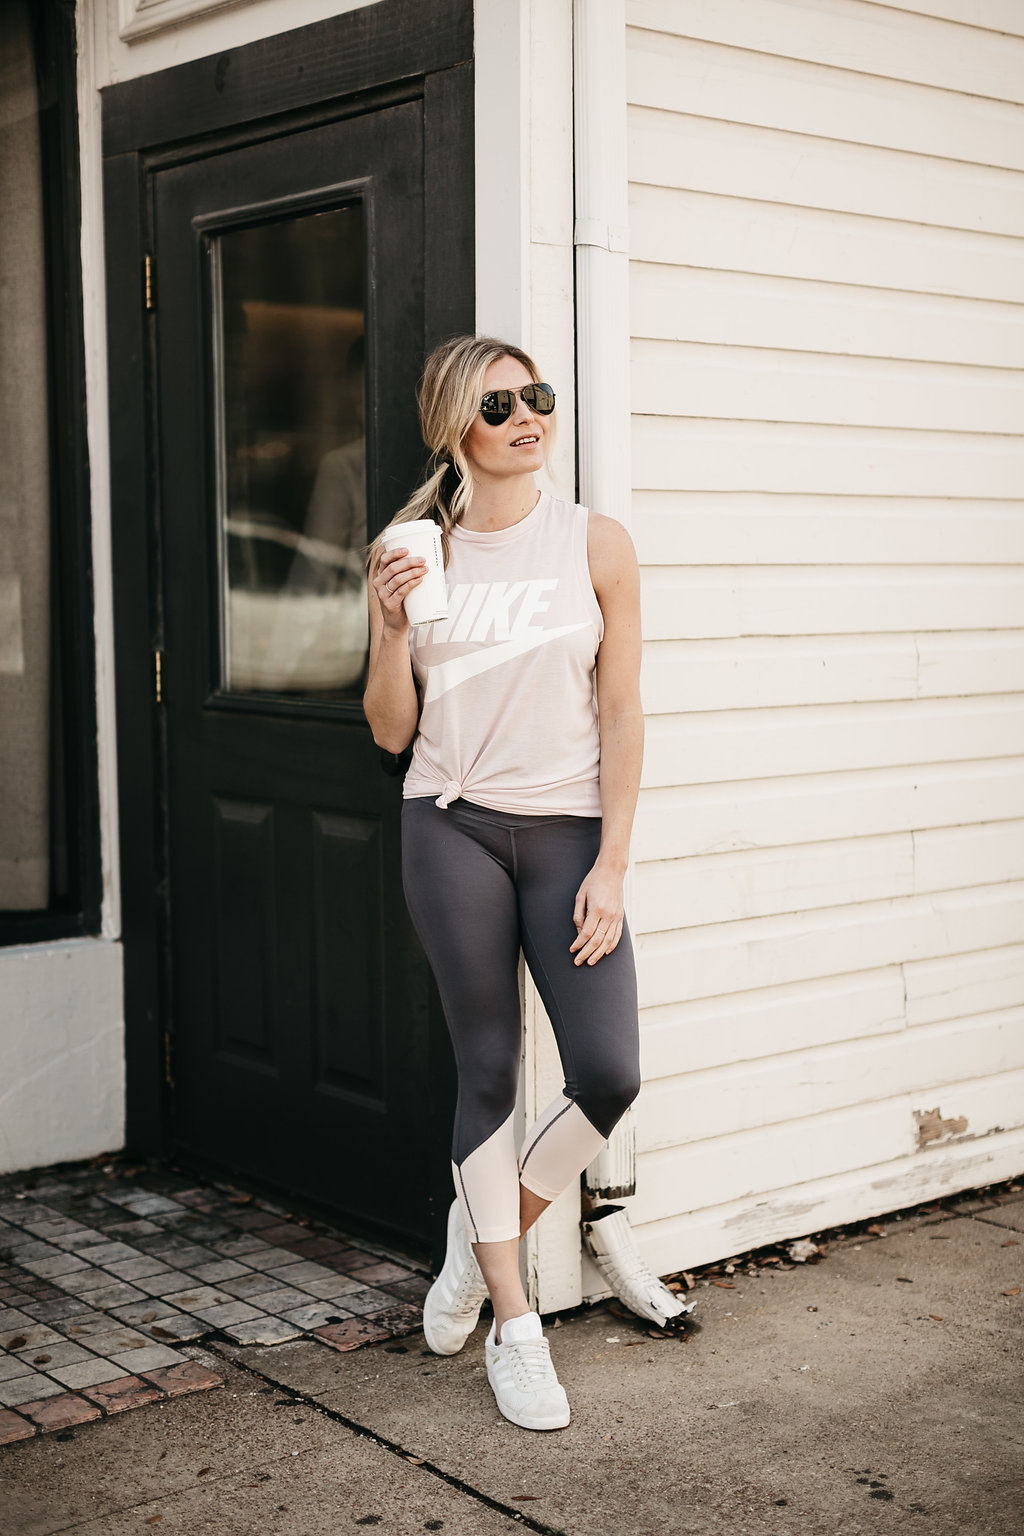 Brooke Burnett in workout wear